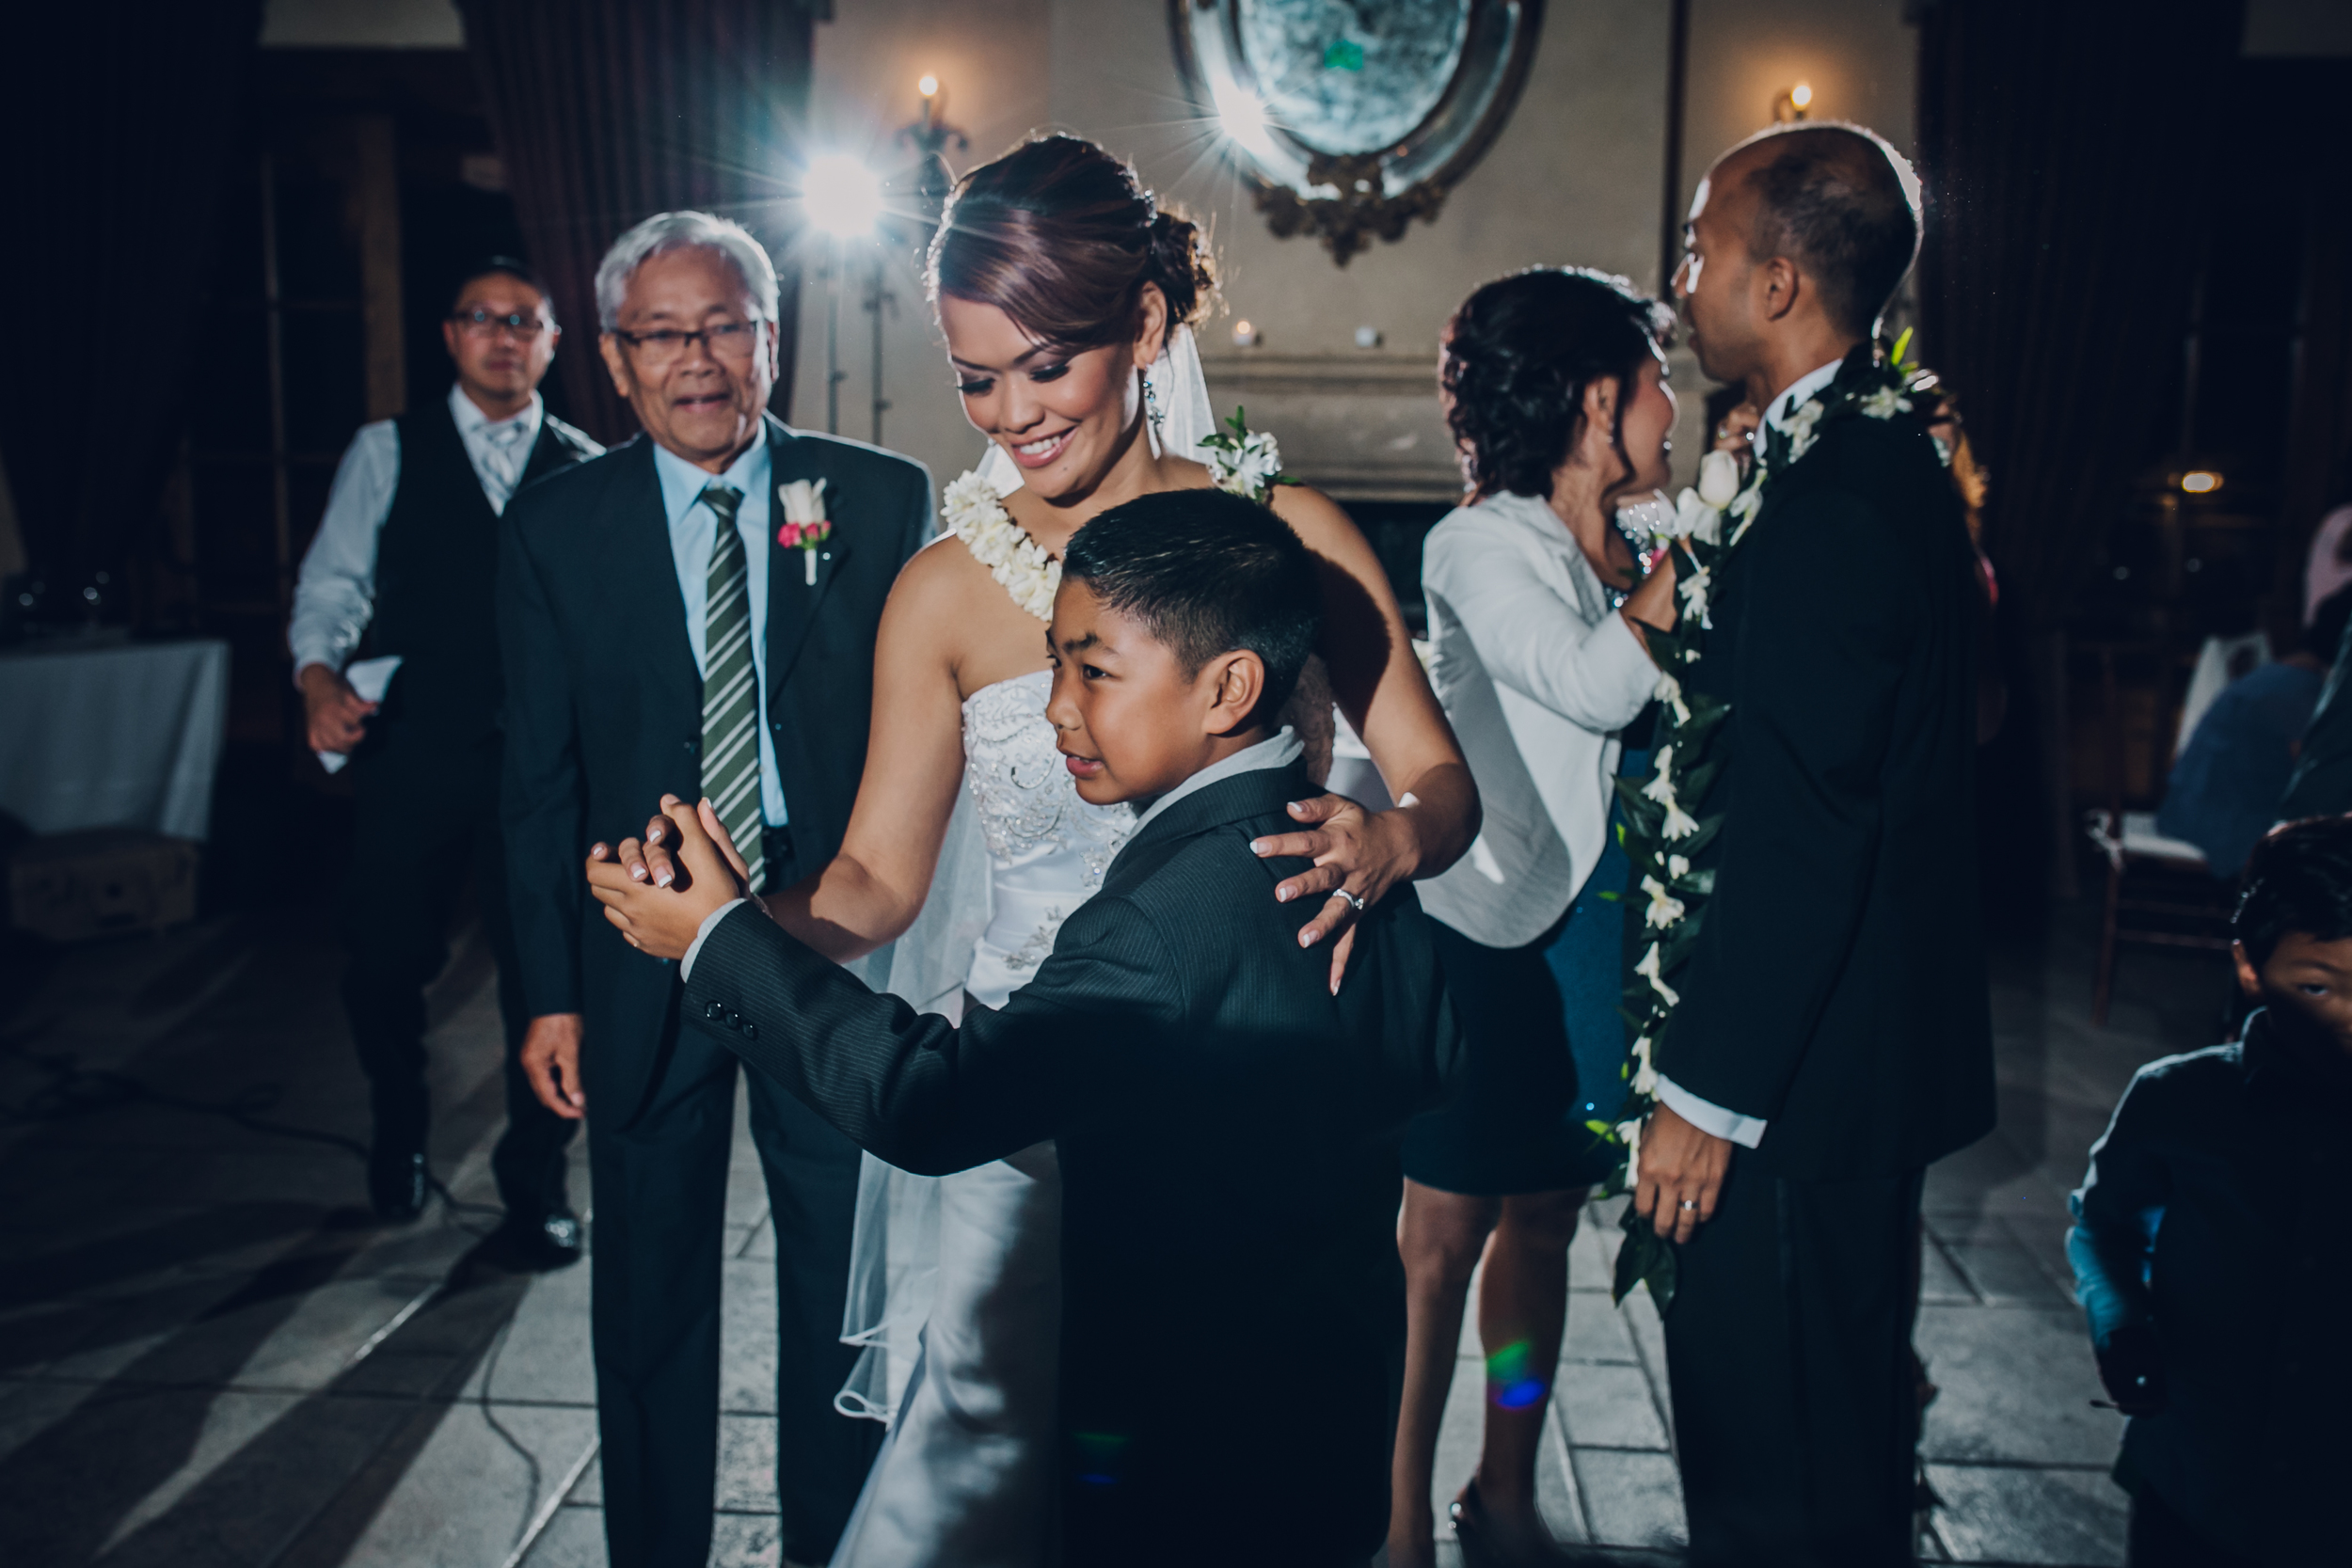 Shiela + Lester's Wedding 9-30-15 1235.jpg